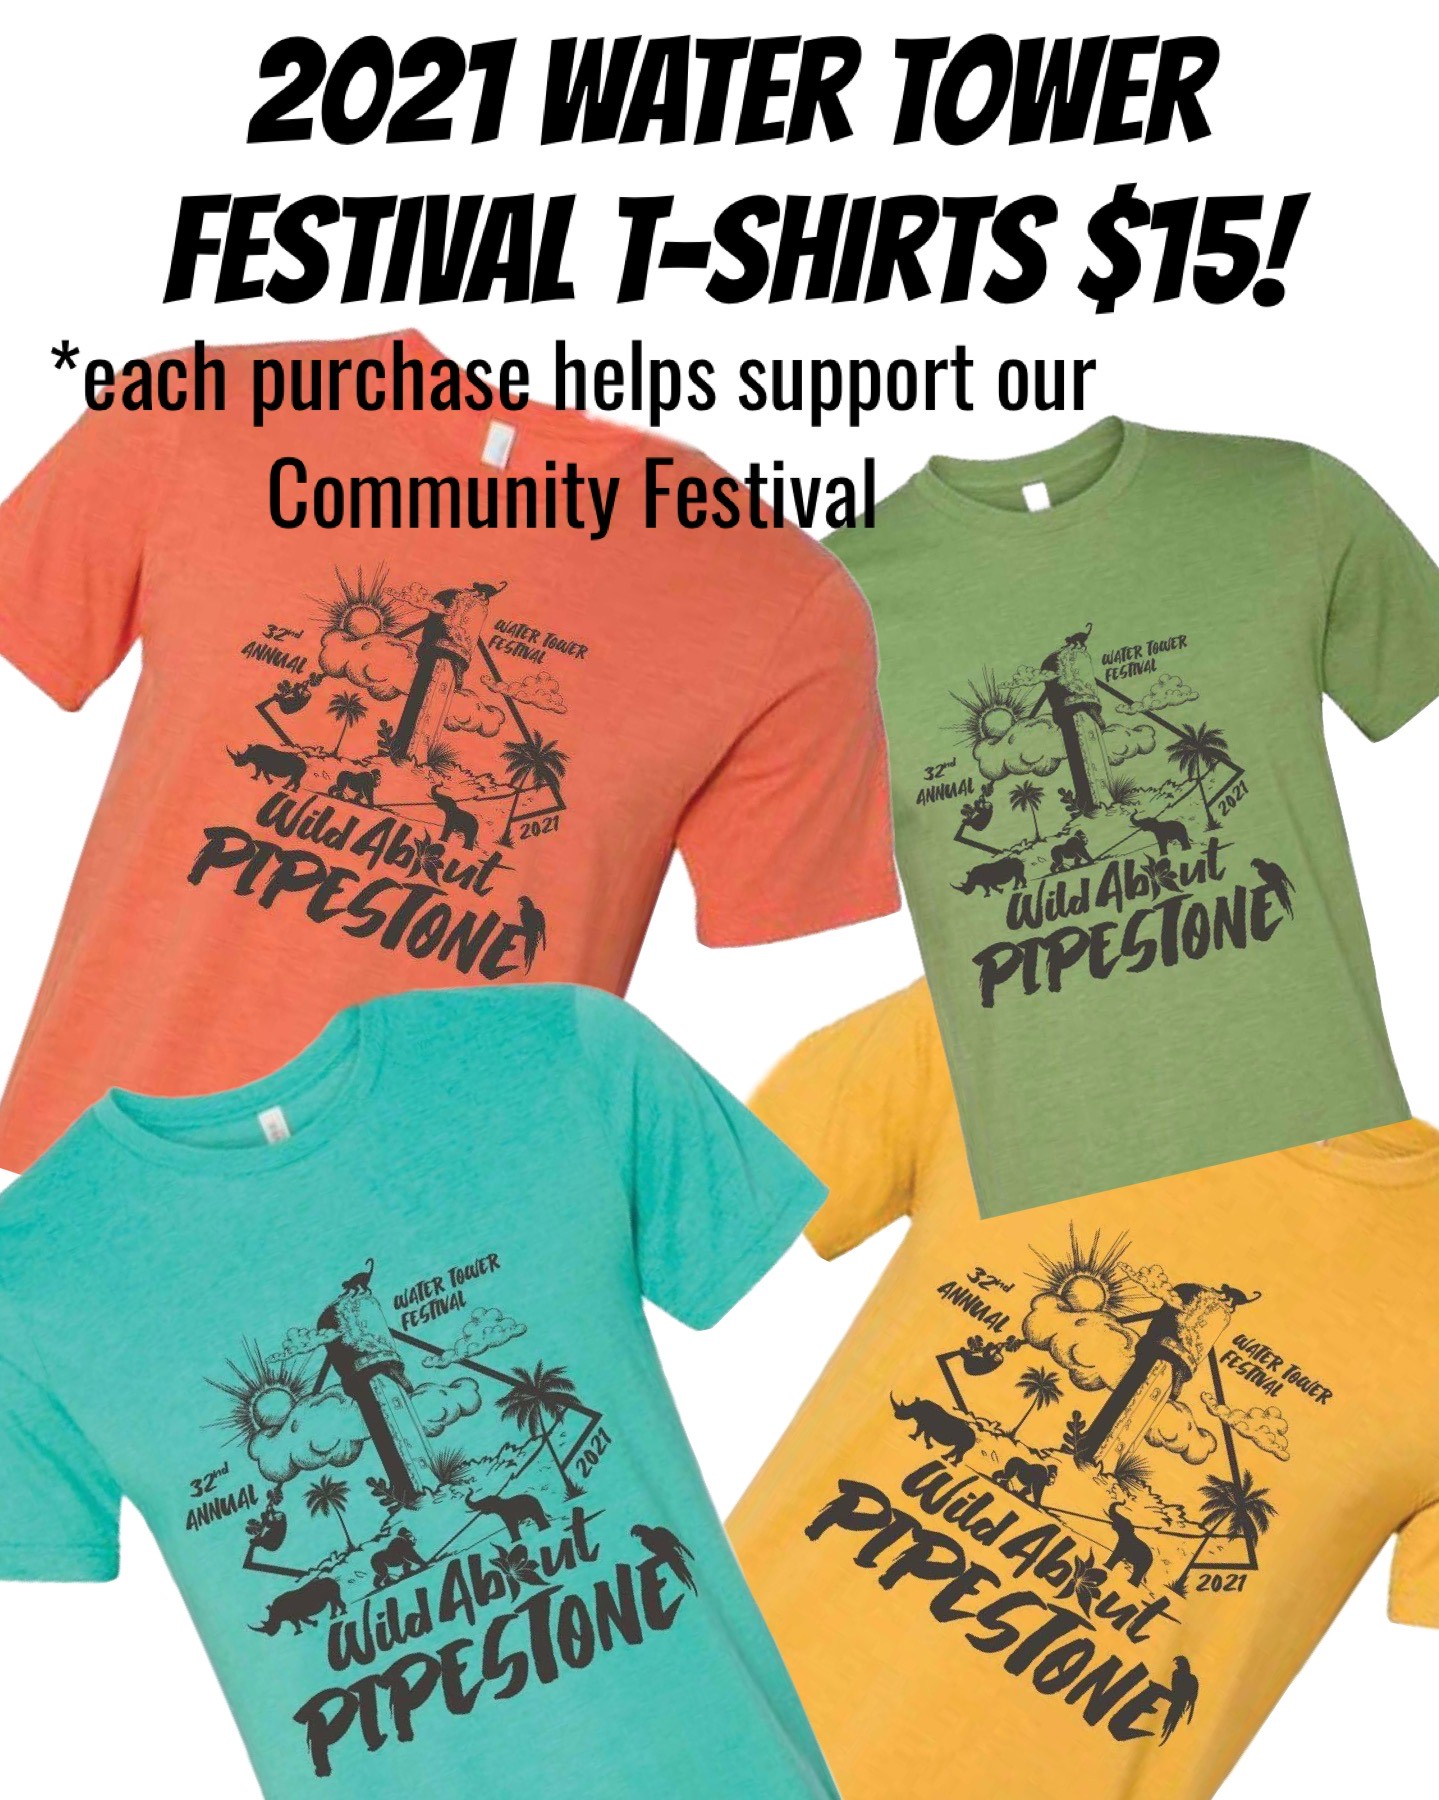 2021 Water Tower Festival Tee Shirts Now Available at SoJo's